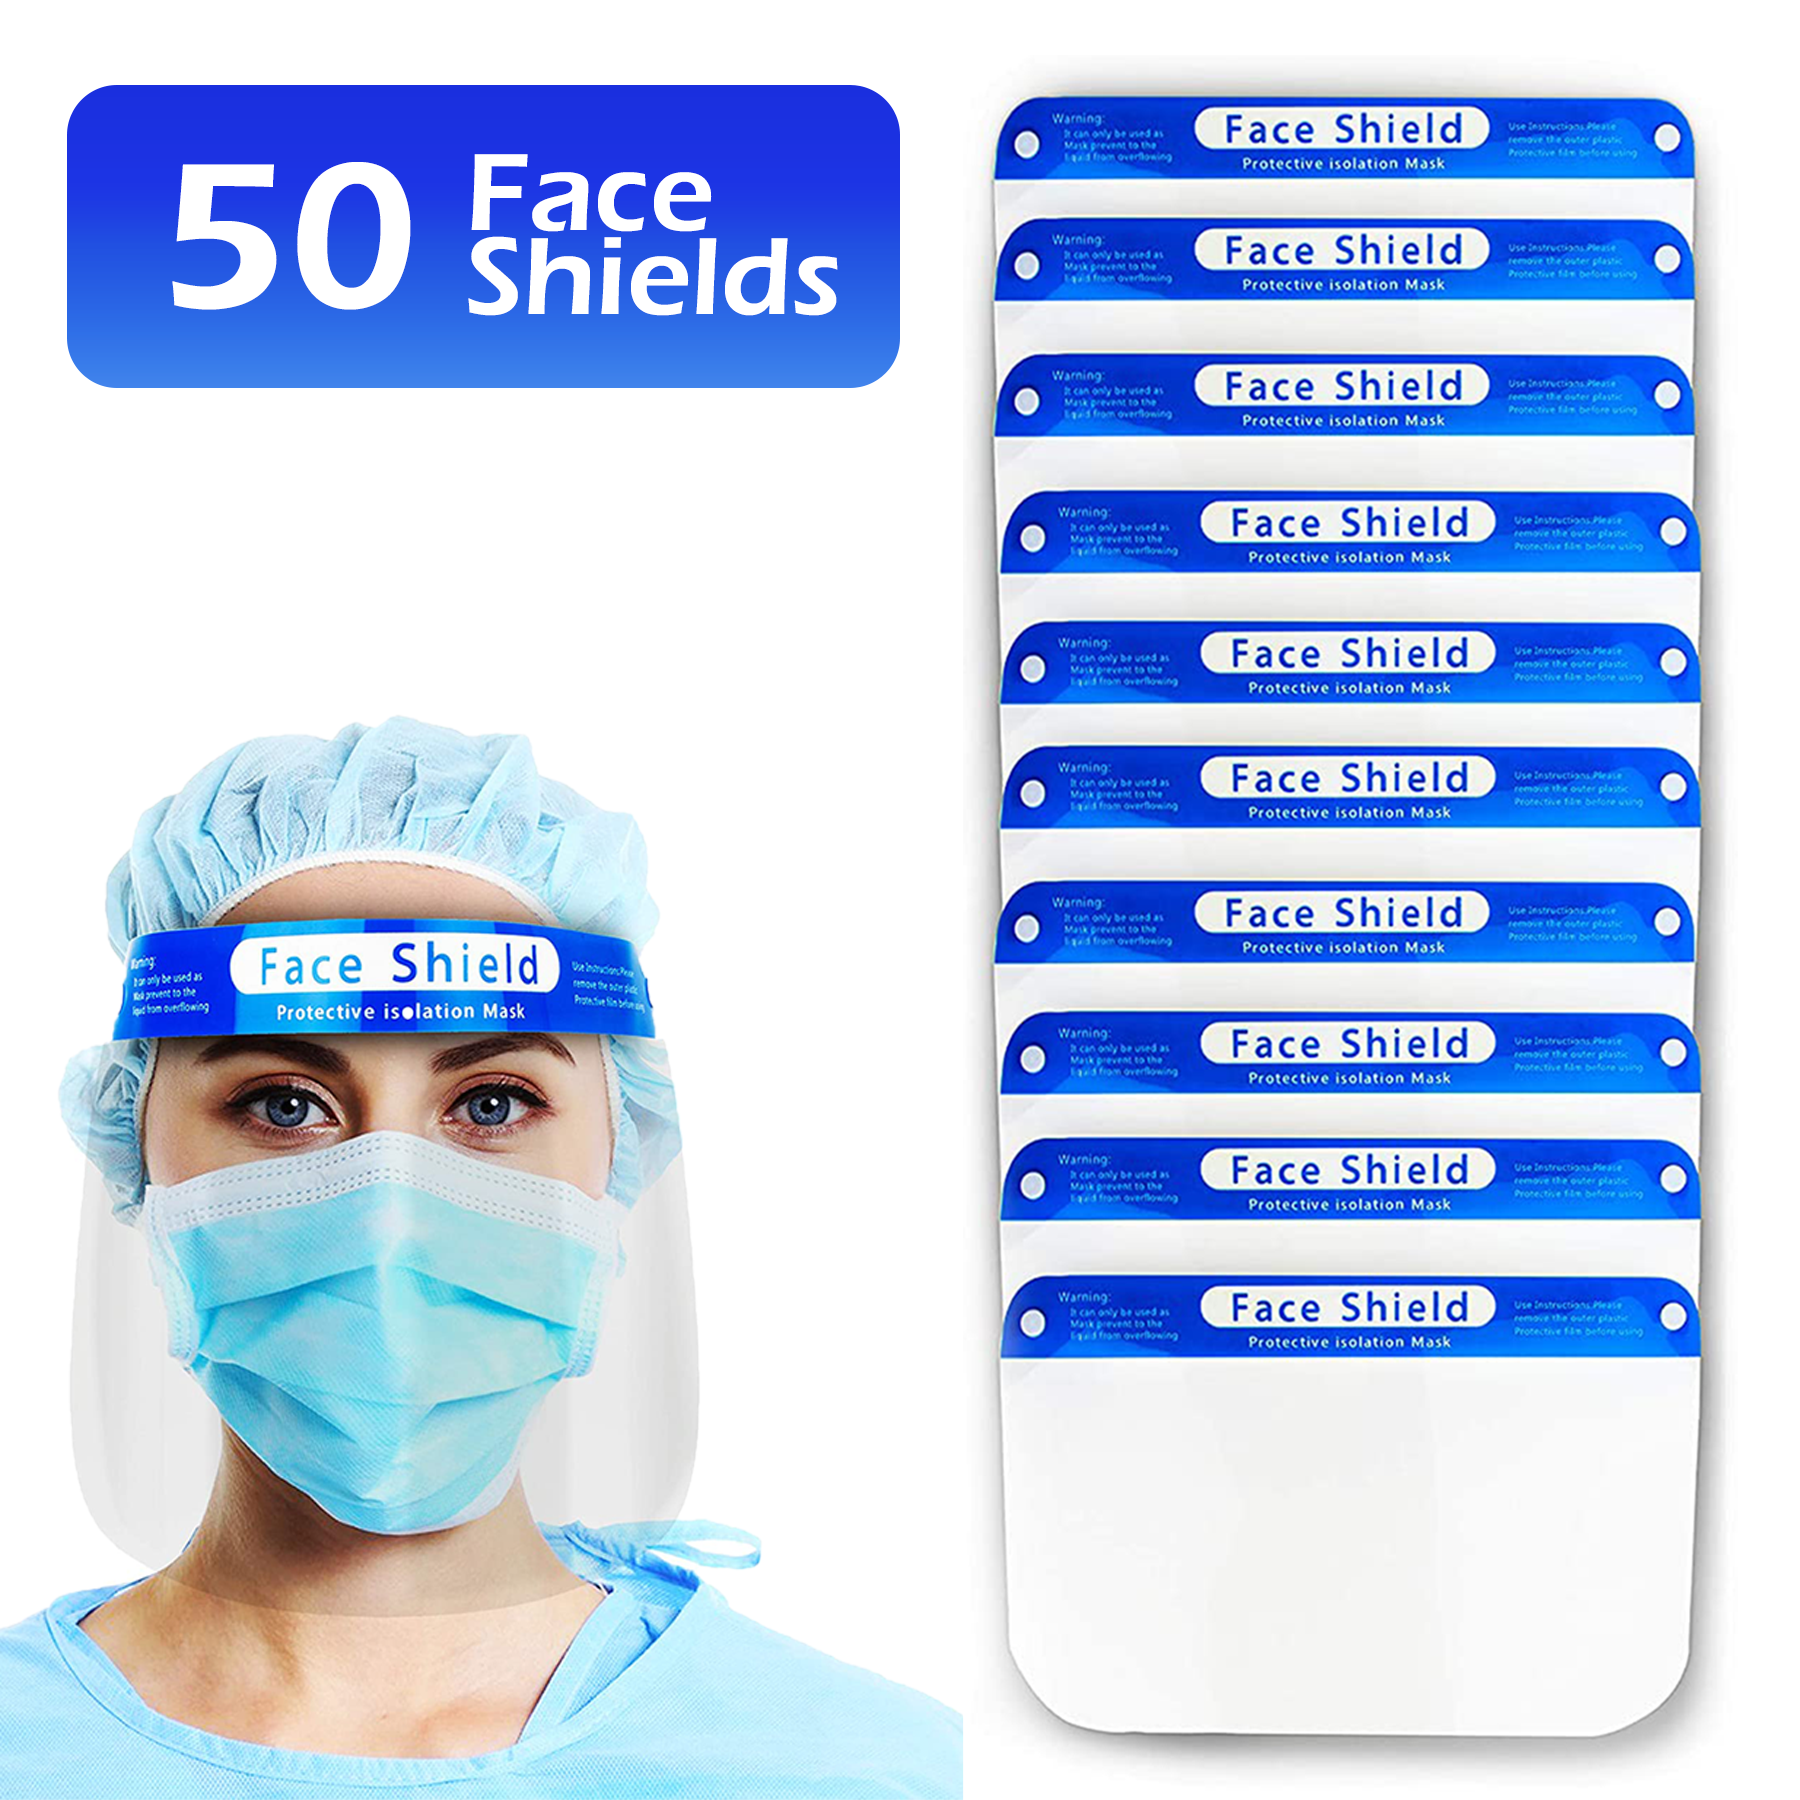 New Children/'s Kids Extra Protection Mask Face Shield w Filter Absorbs Anti Fog